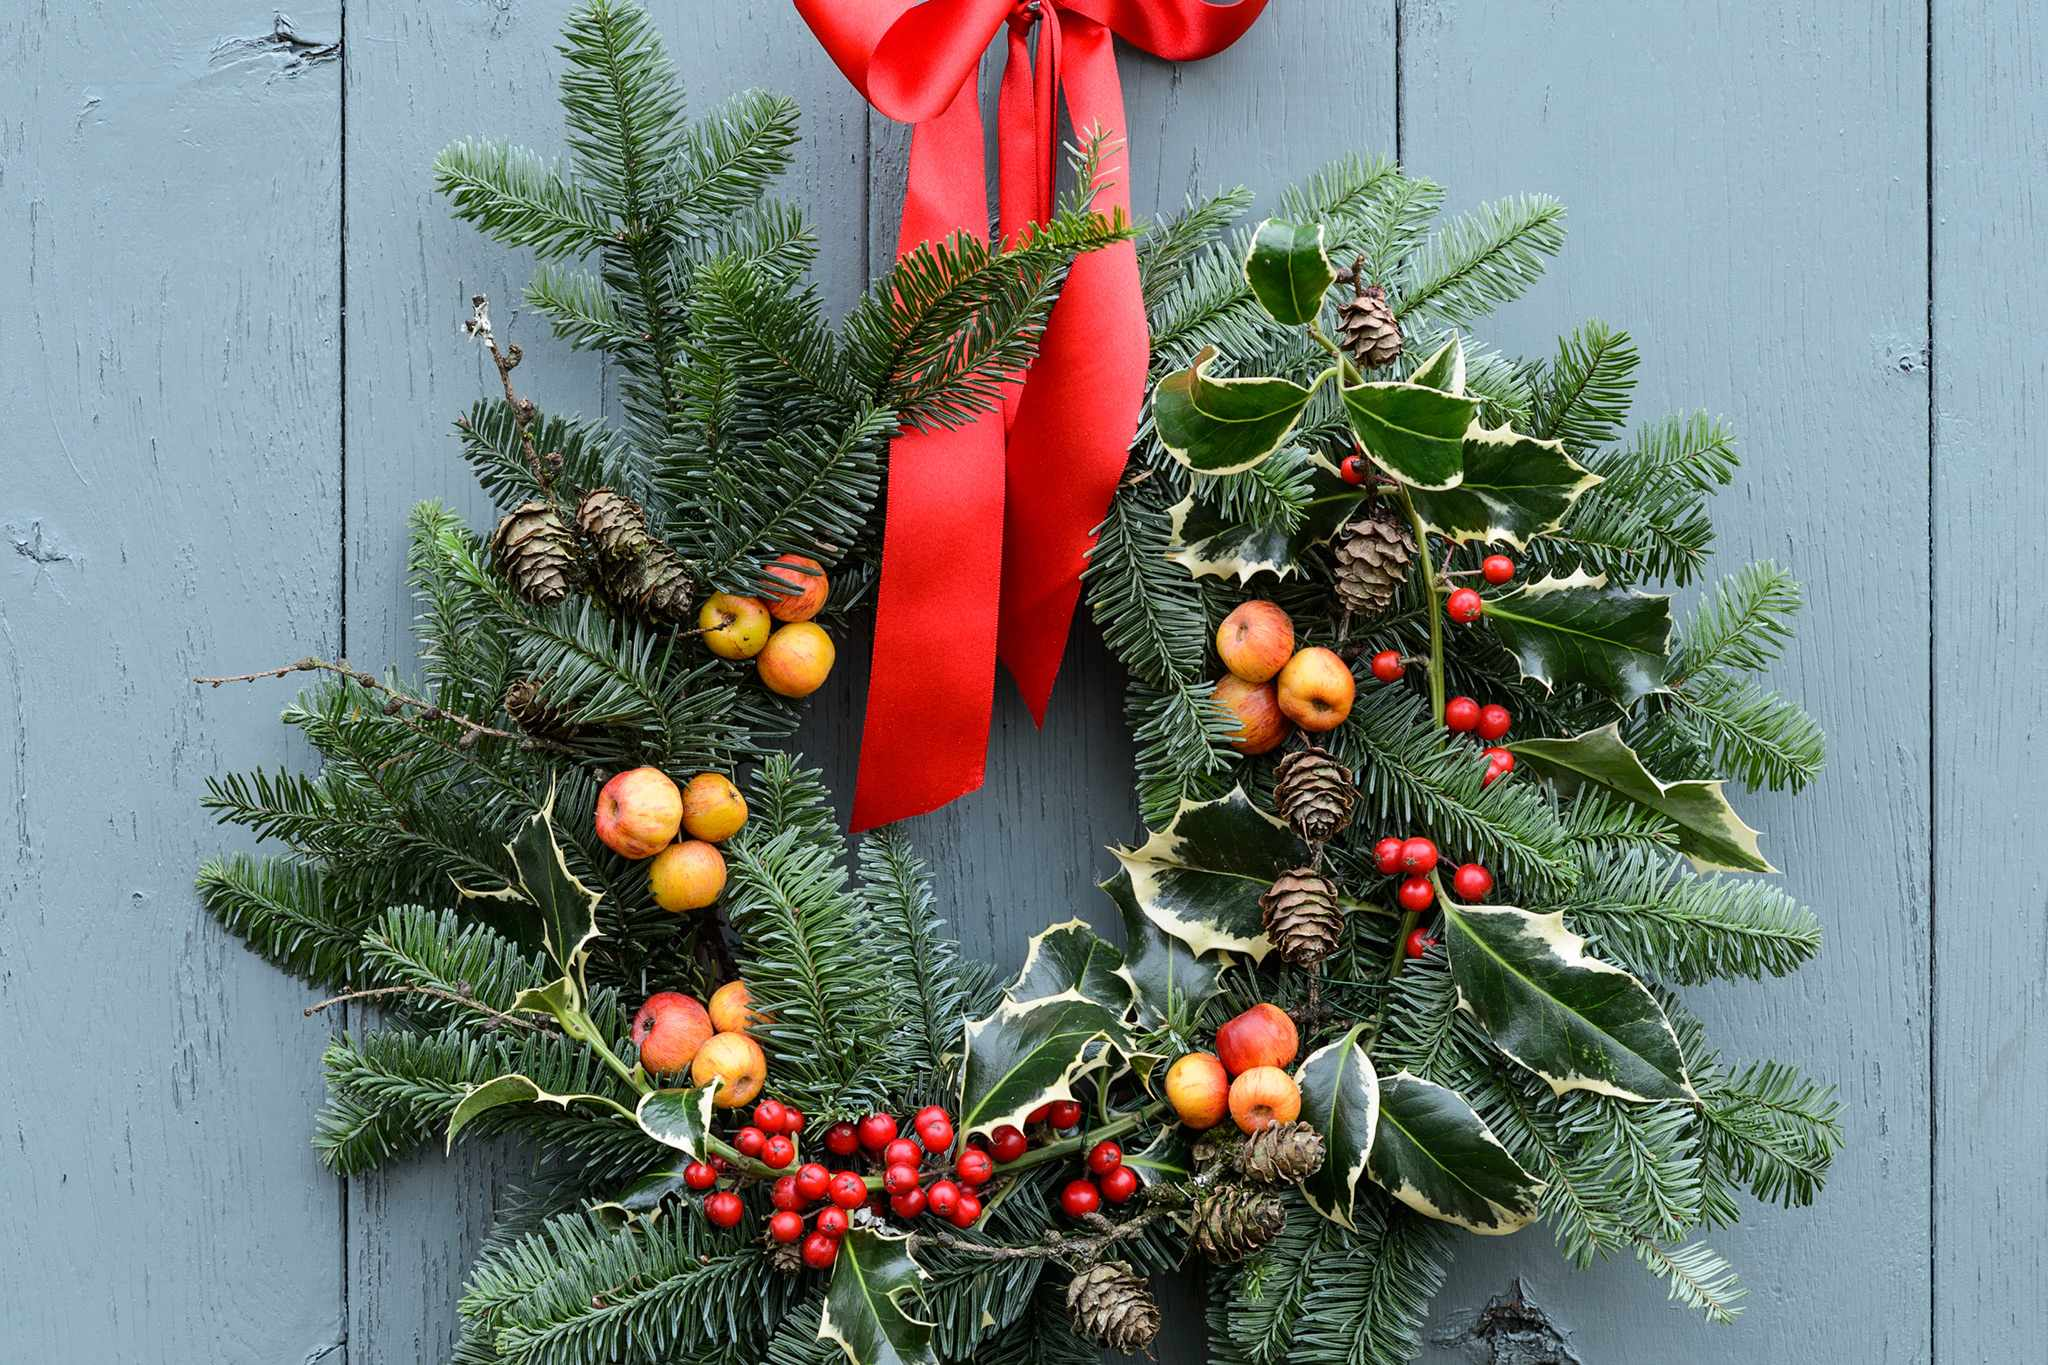 How To Make a Festive Wreath